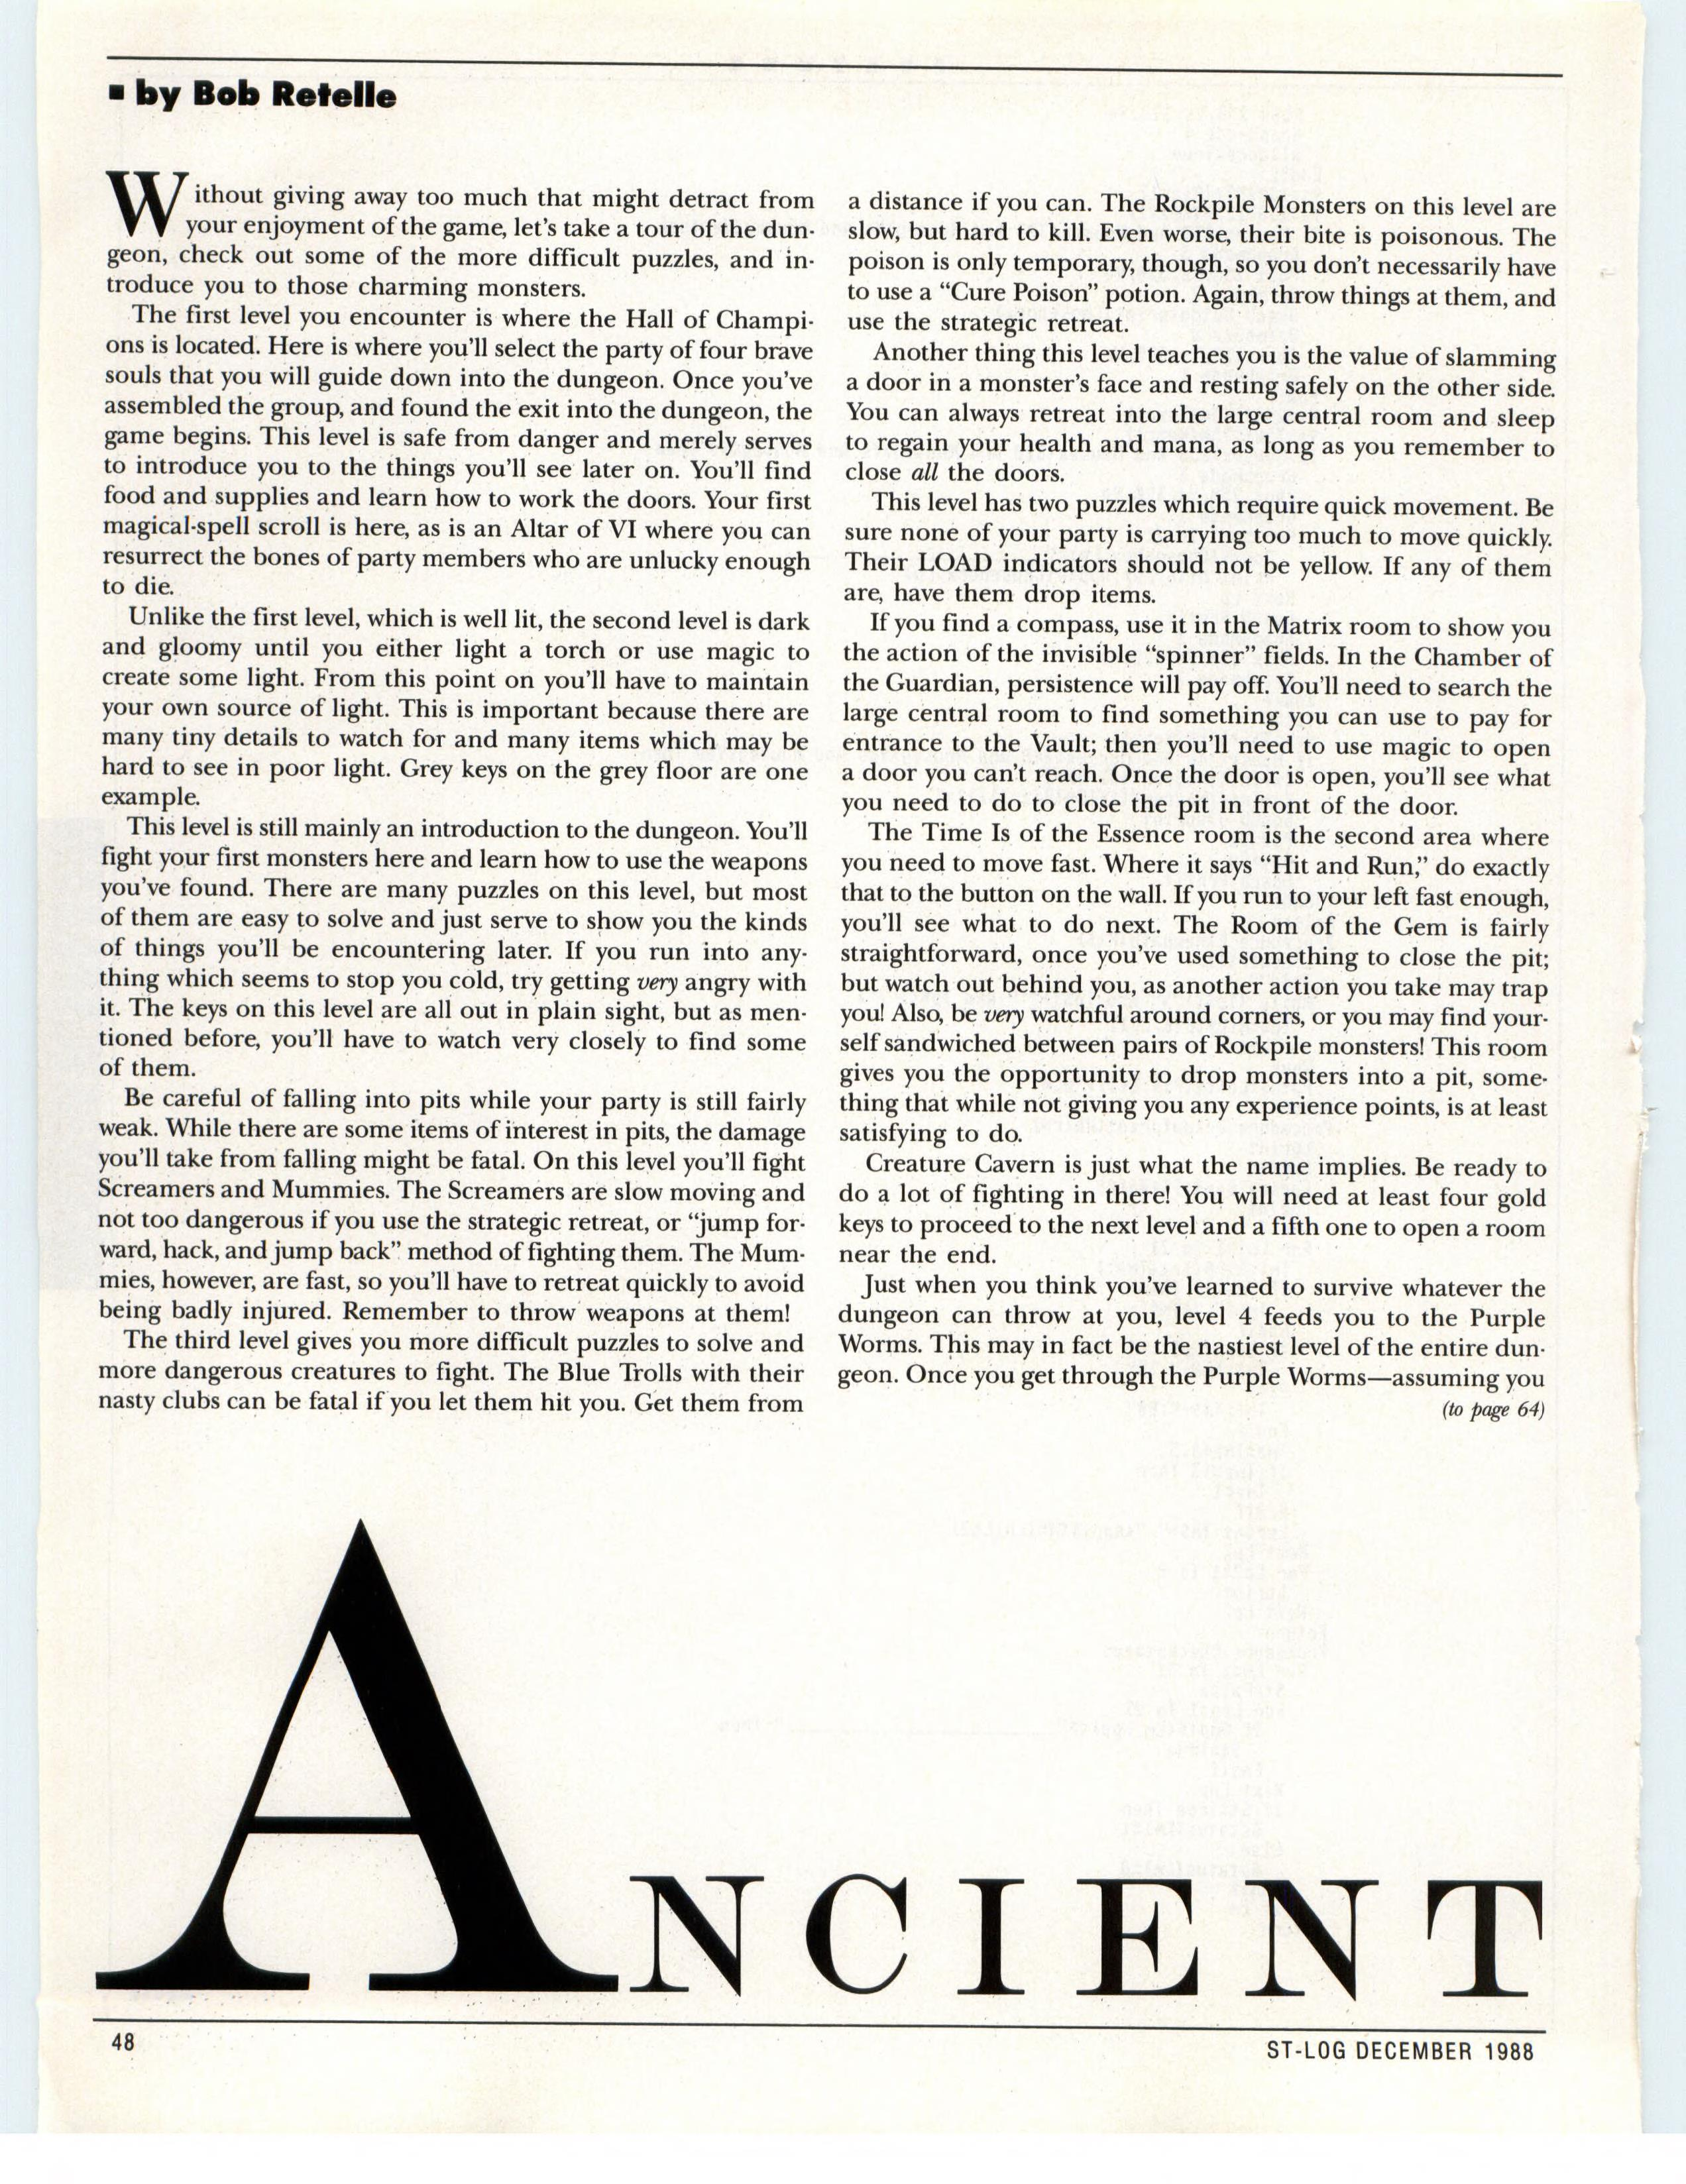 Dungeon Master for Atari ST Guide published in American magazine 'ST-Log', Issue #26 December 1988, Page 48